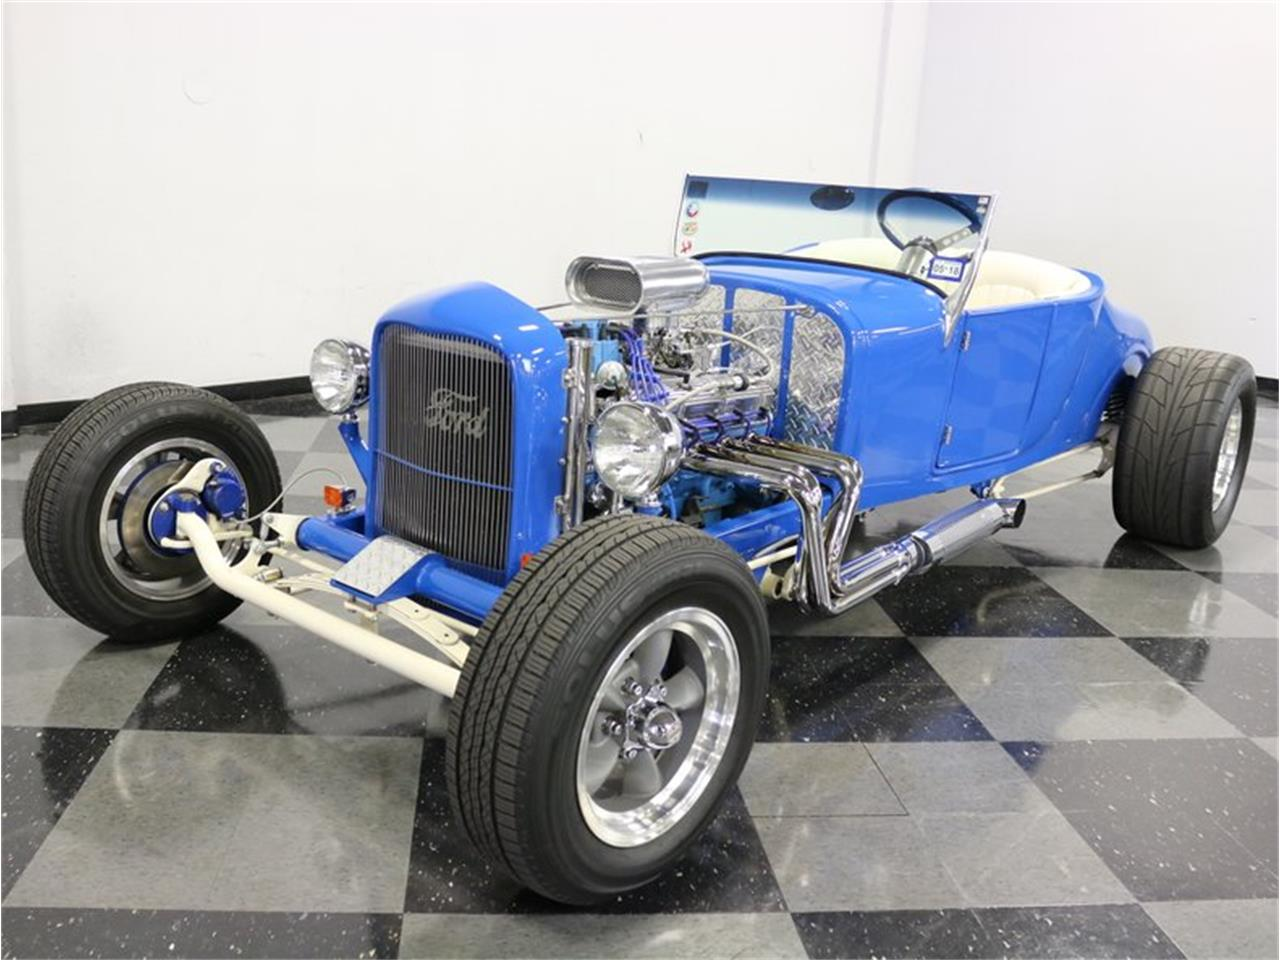 Large Picture of Classic 1927 Ford Model T located in Texas Offered by Streetside Classics - Dallas / Fort Worth - MAZM